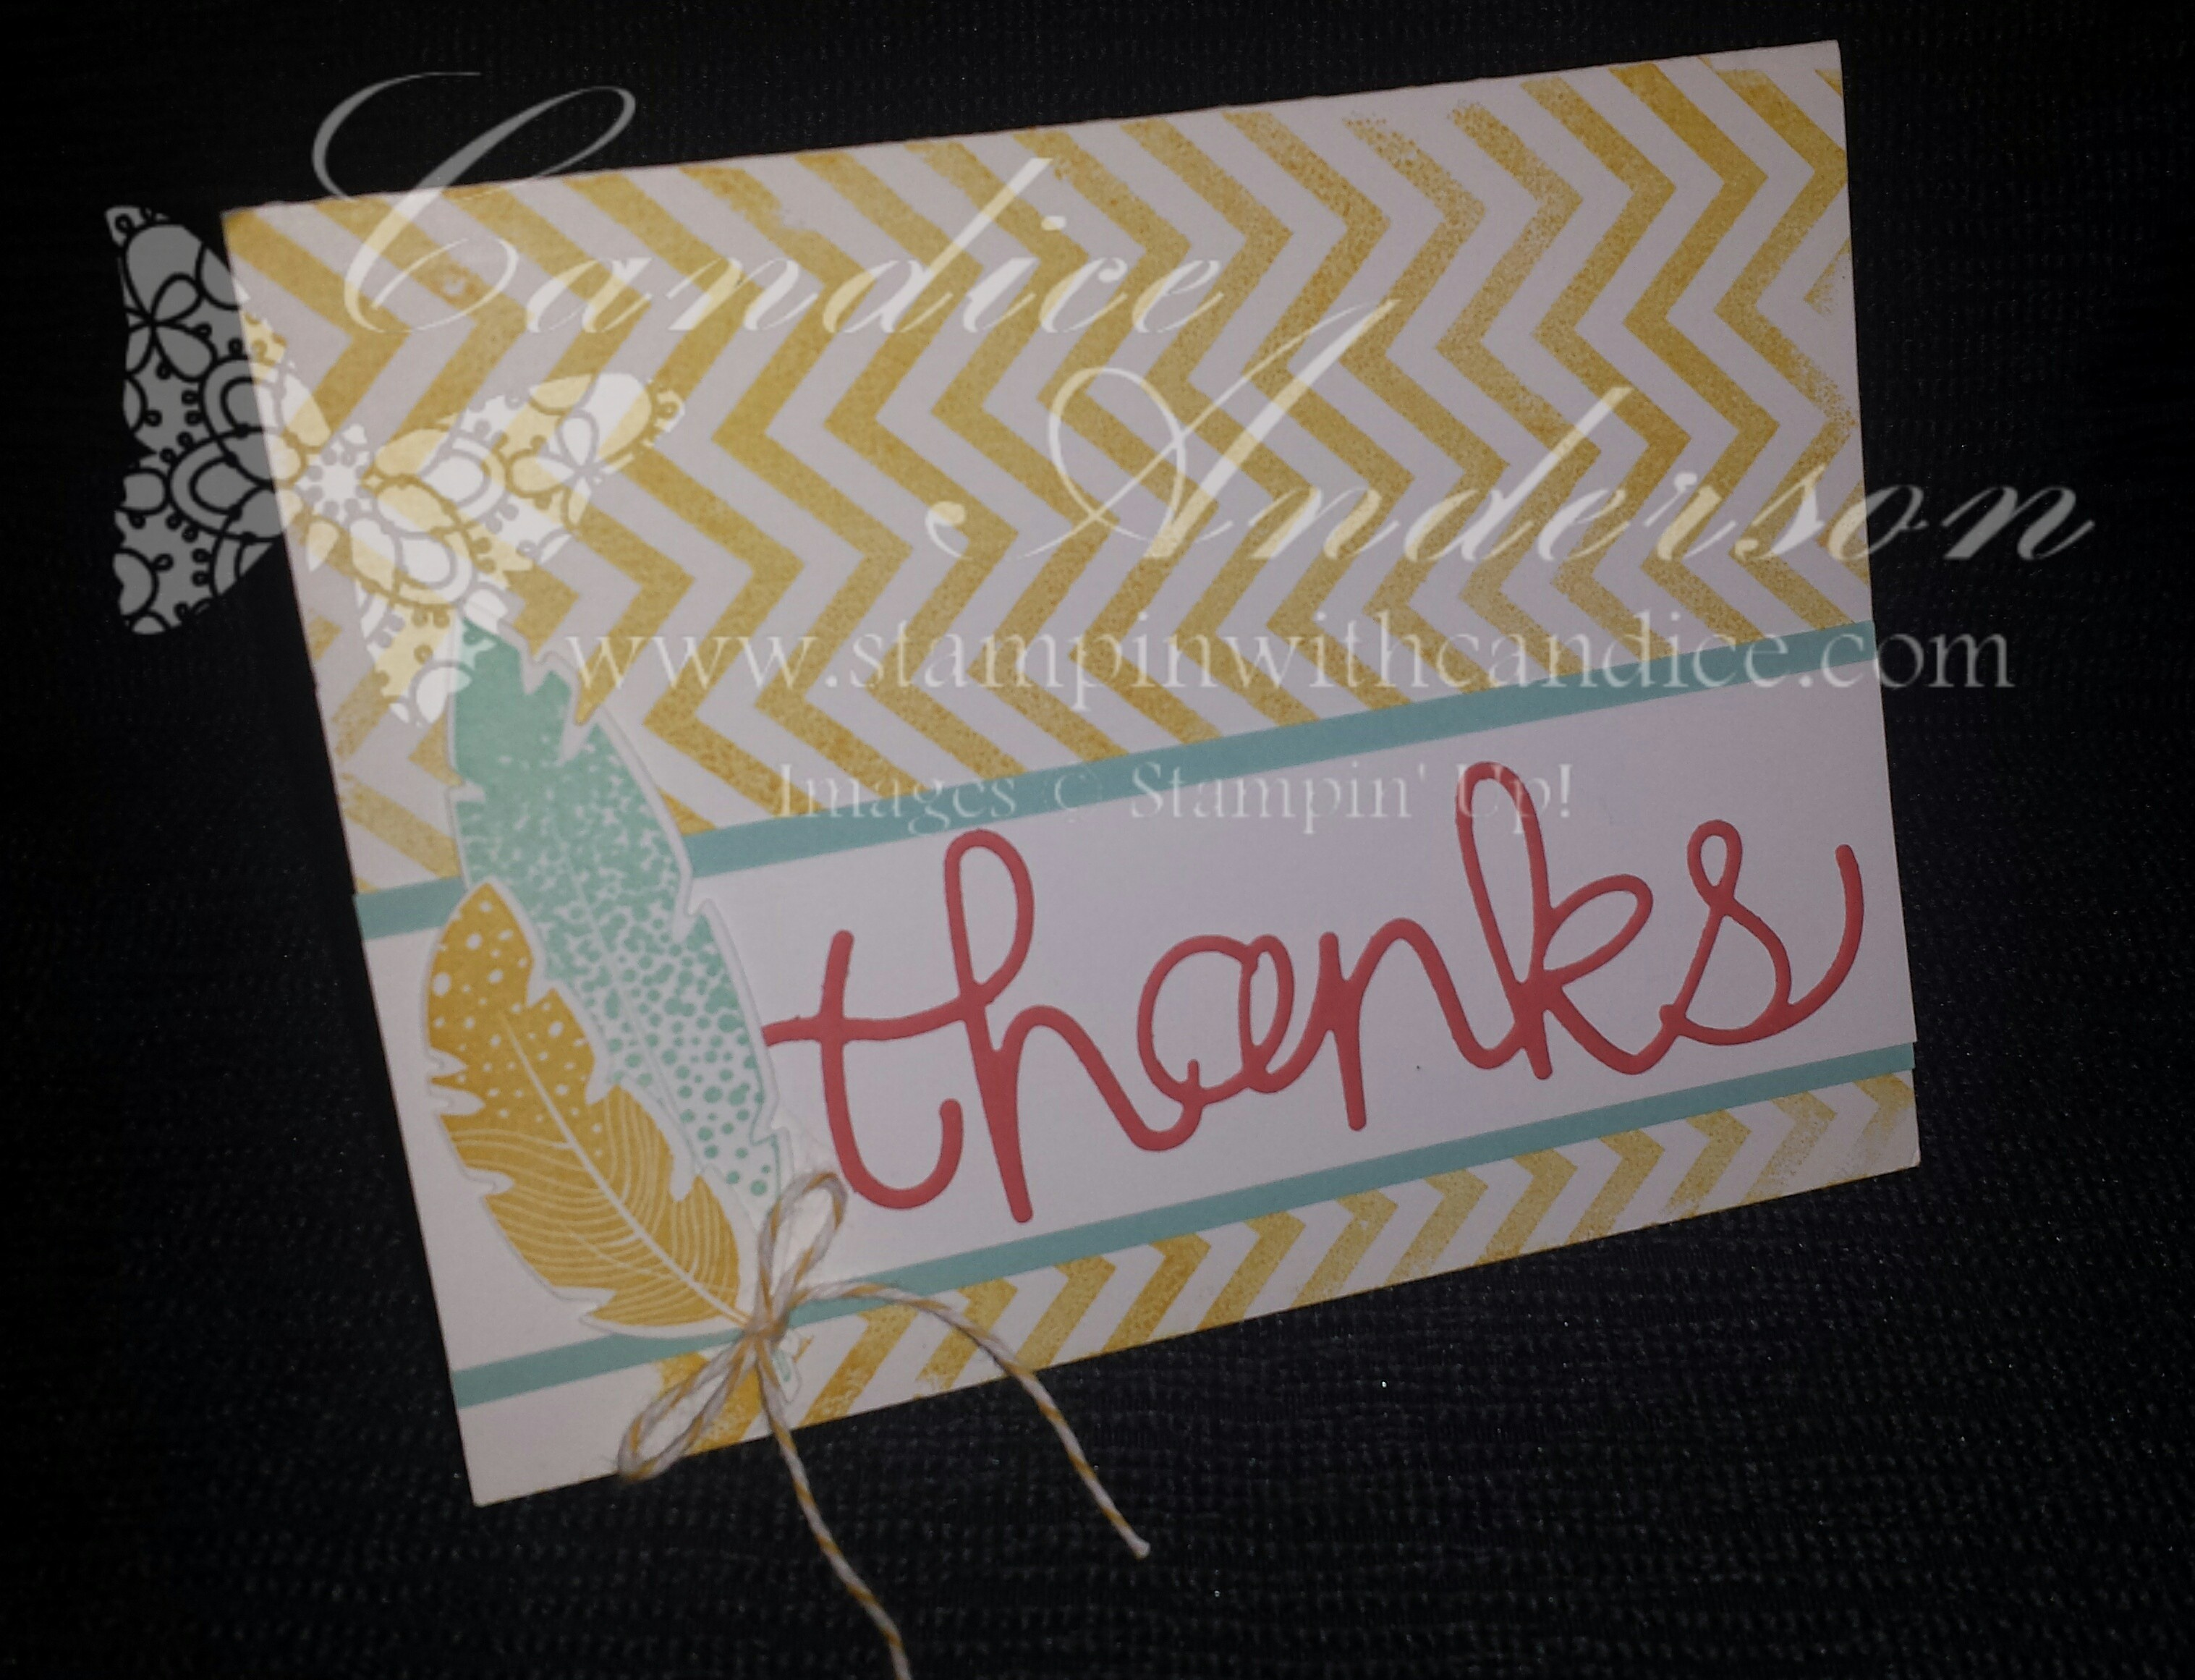 Thanks Card TGIF Challenge